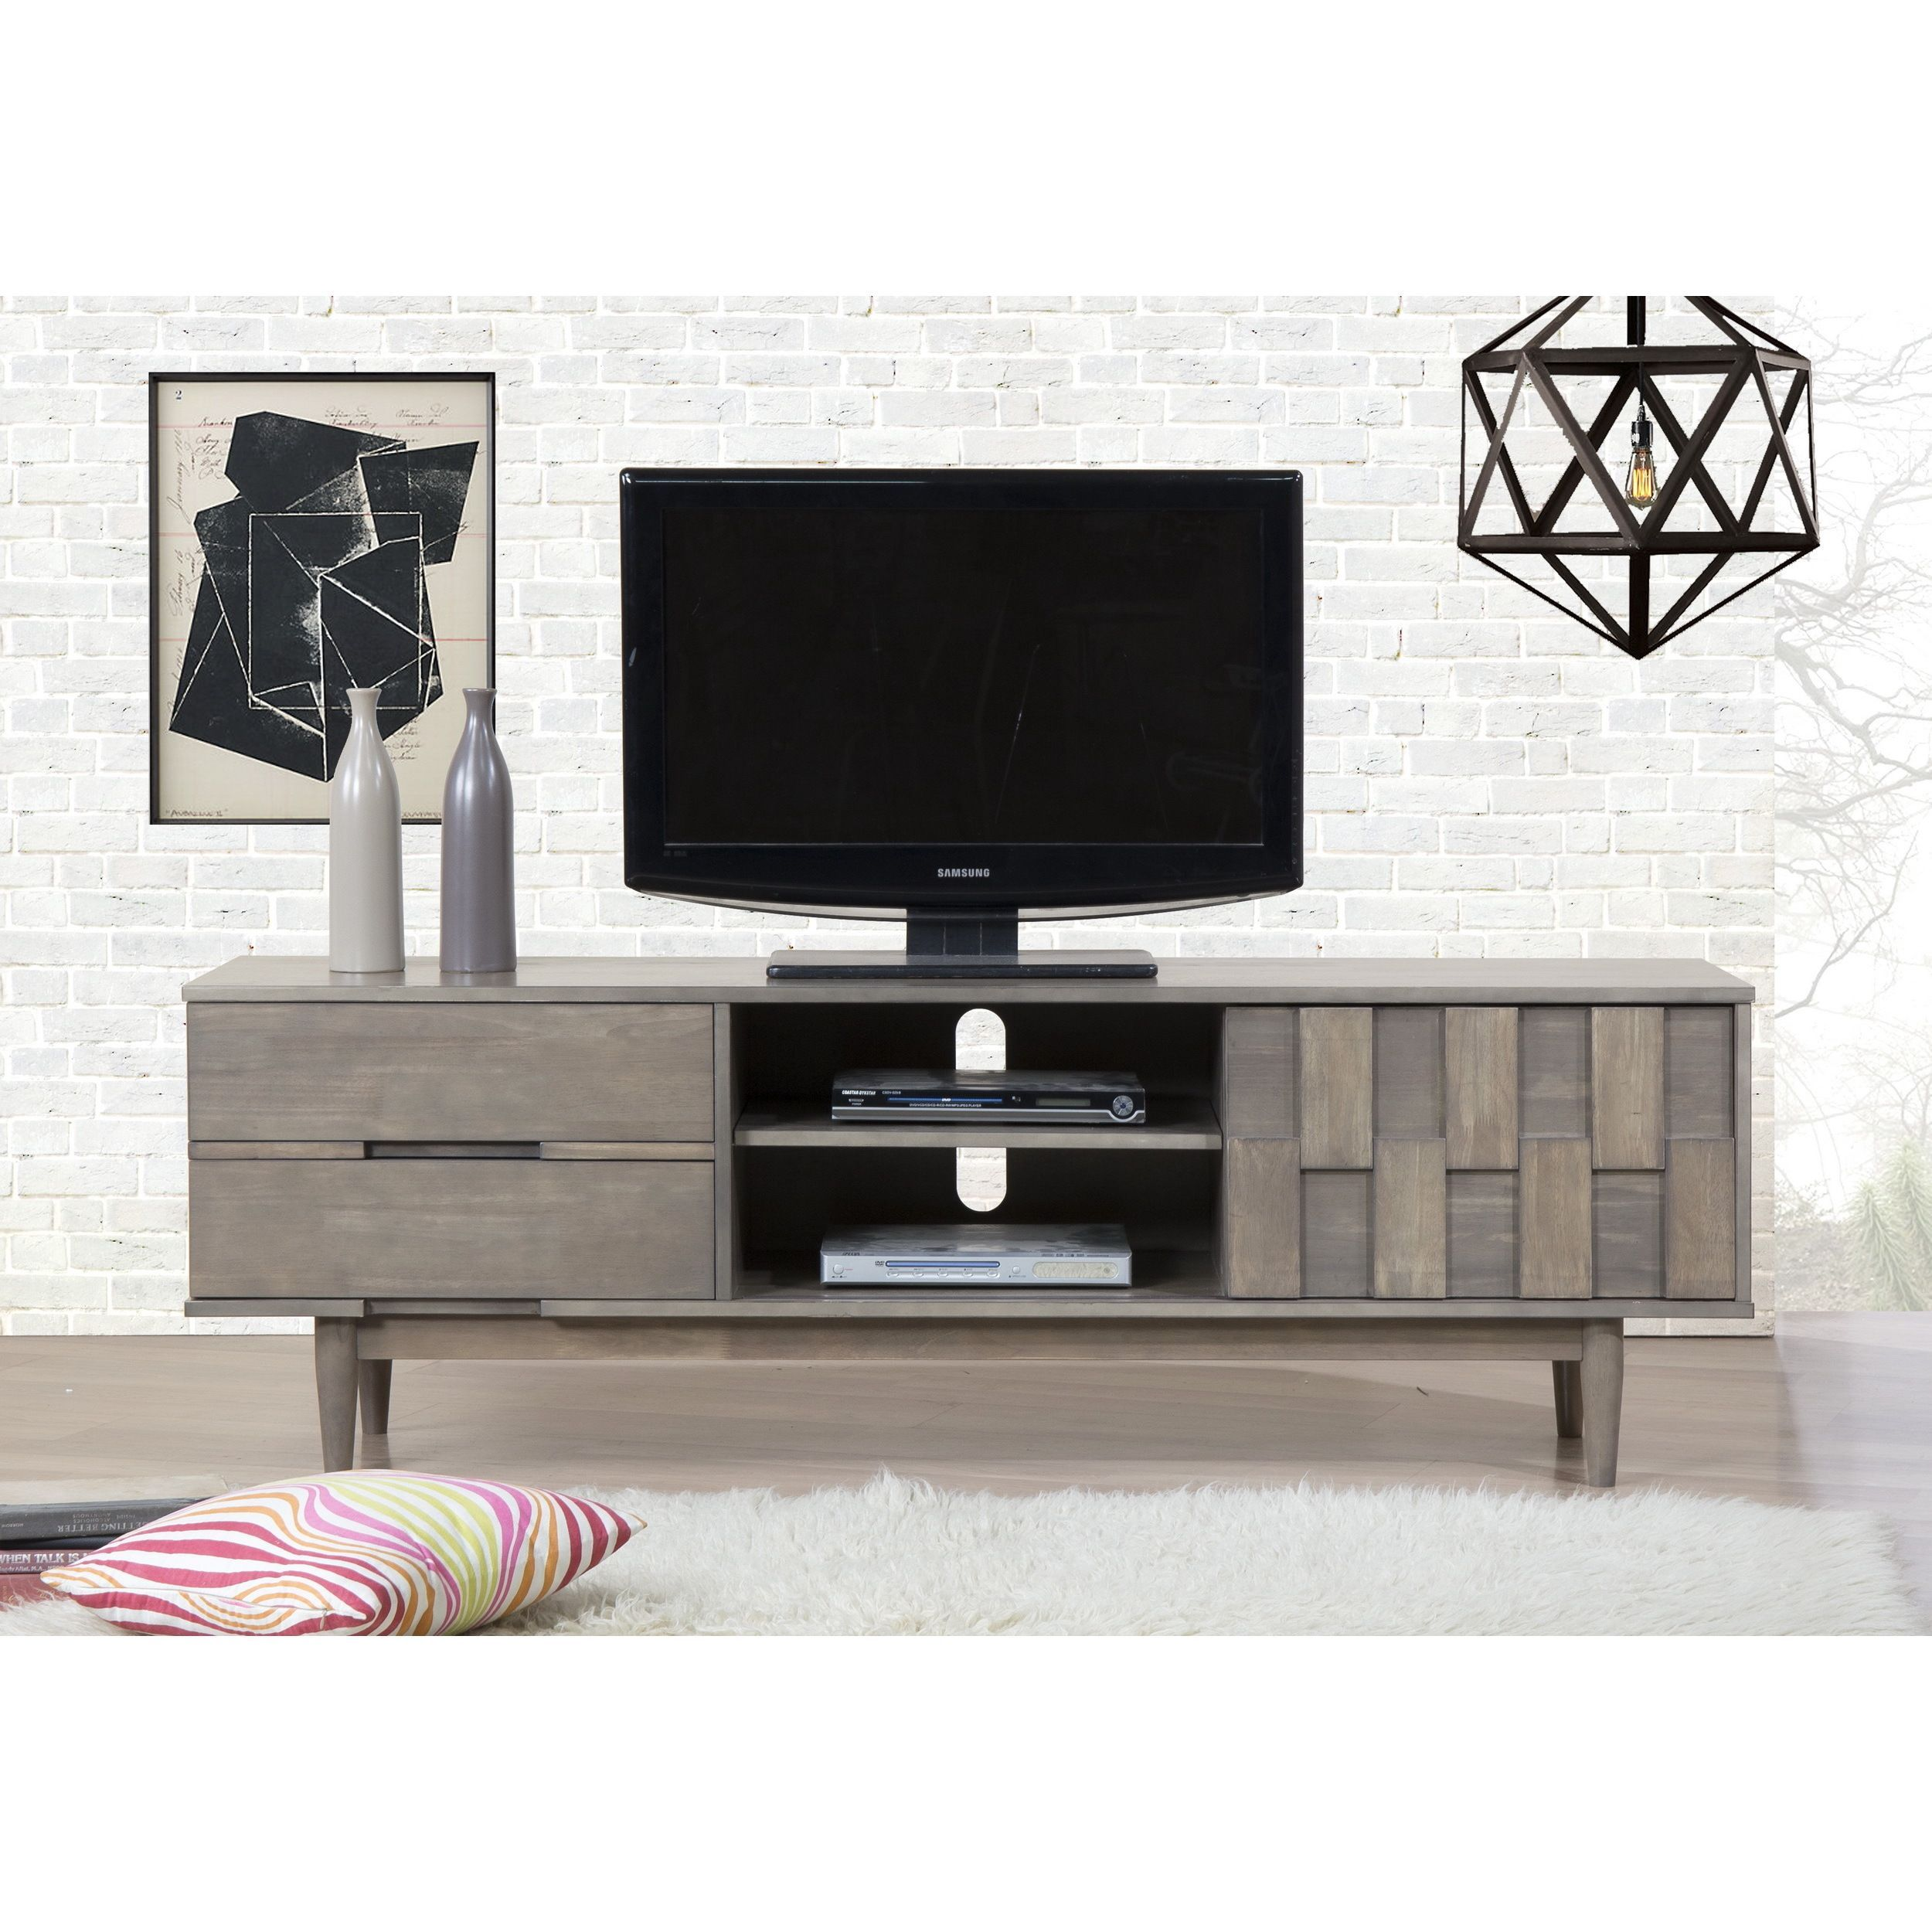 Crafted From Durable Wood And Finished In A Light Charcoal Grey This Entertainment Console Offers Variety Of